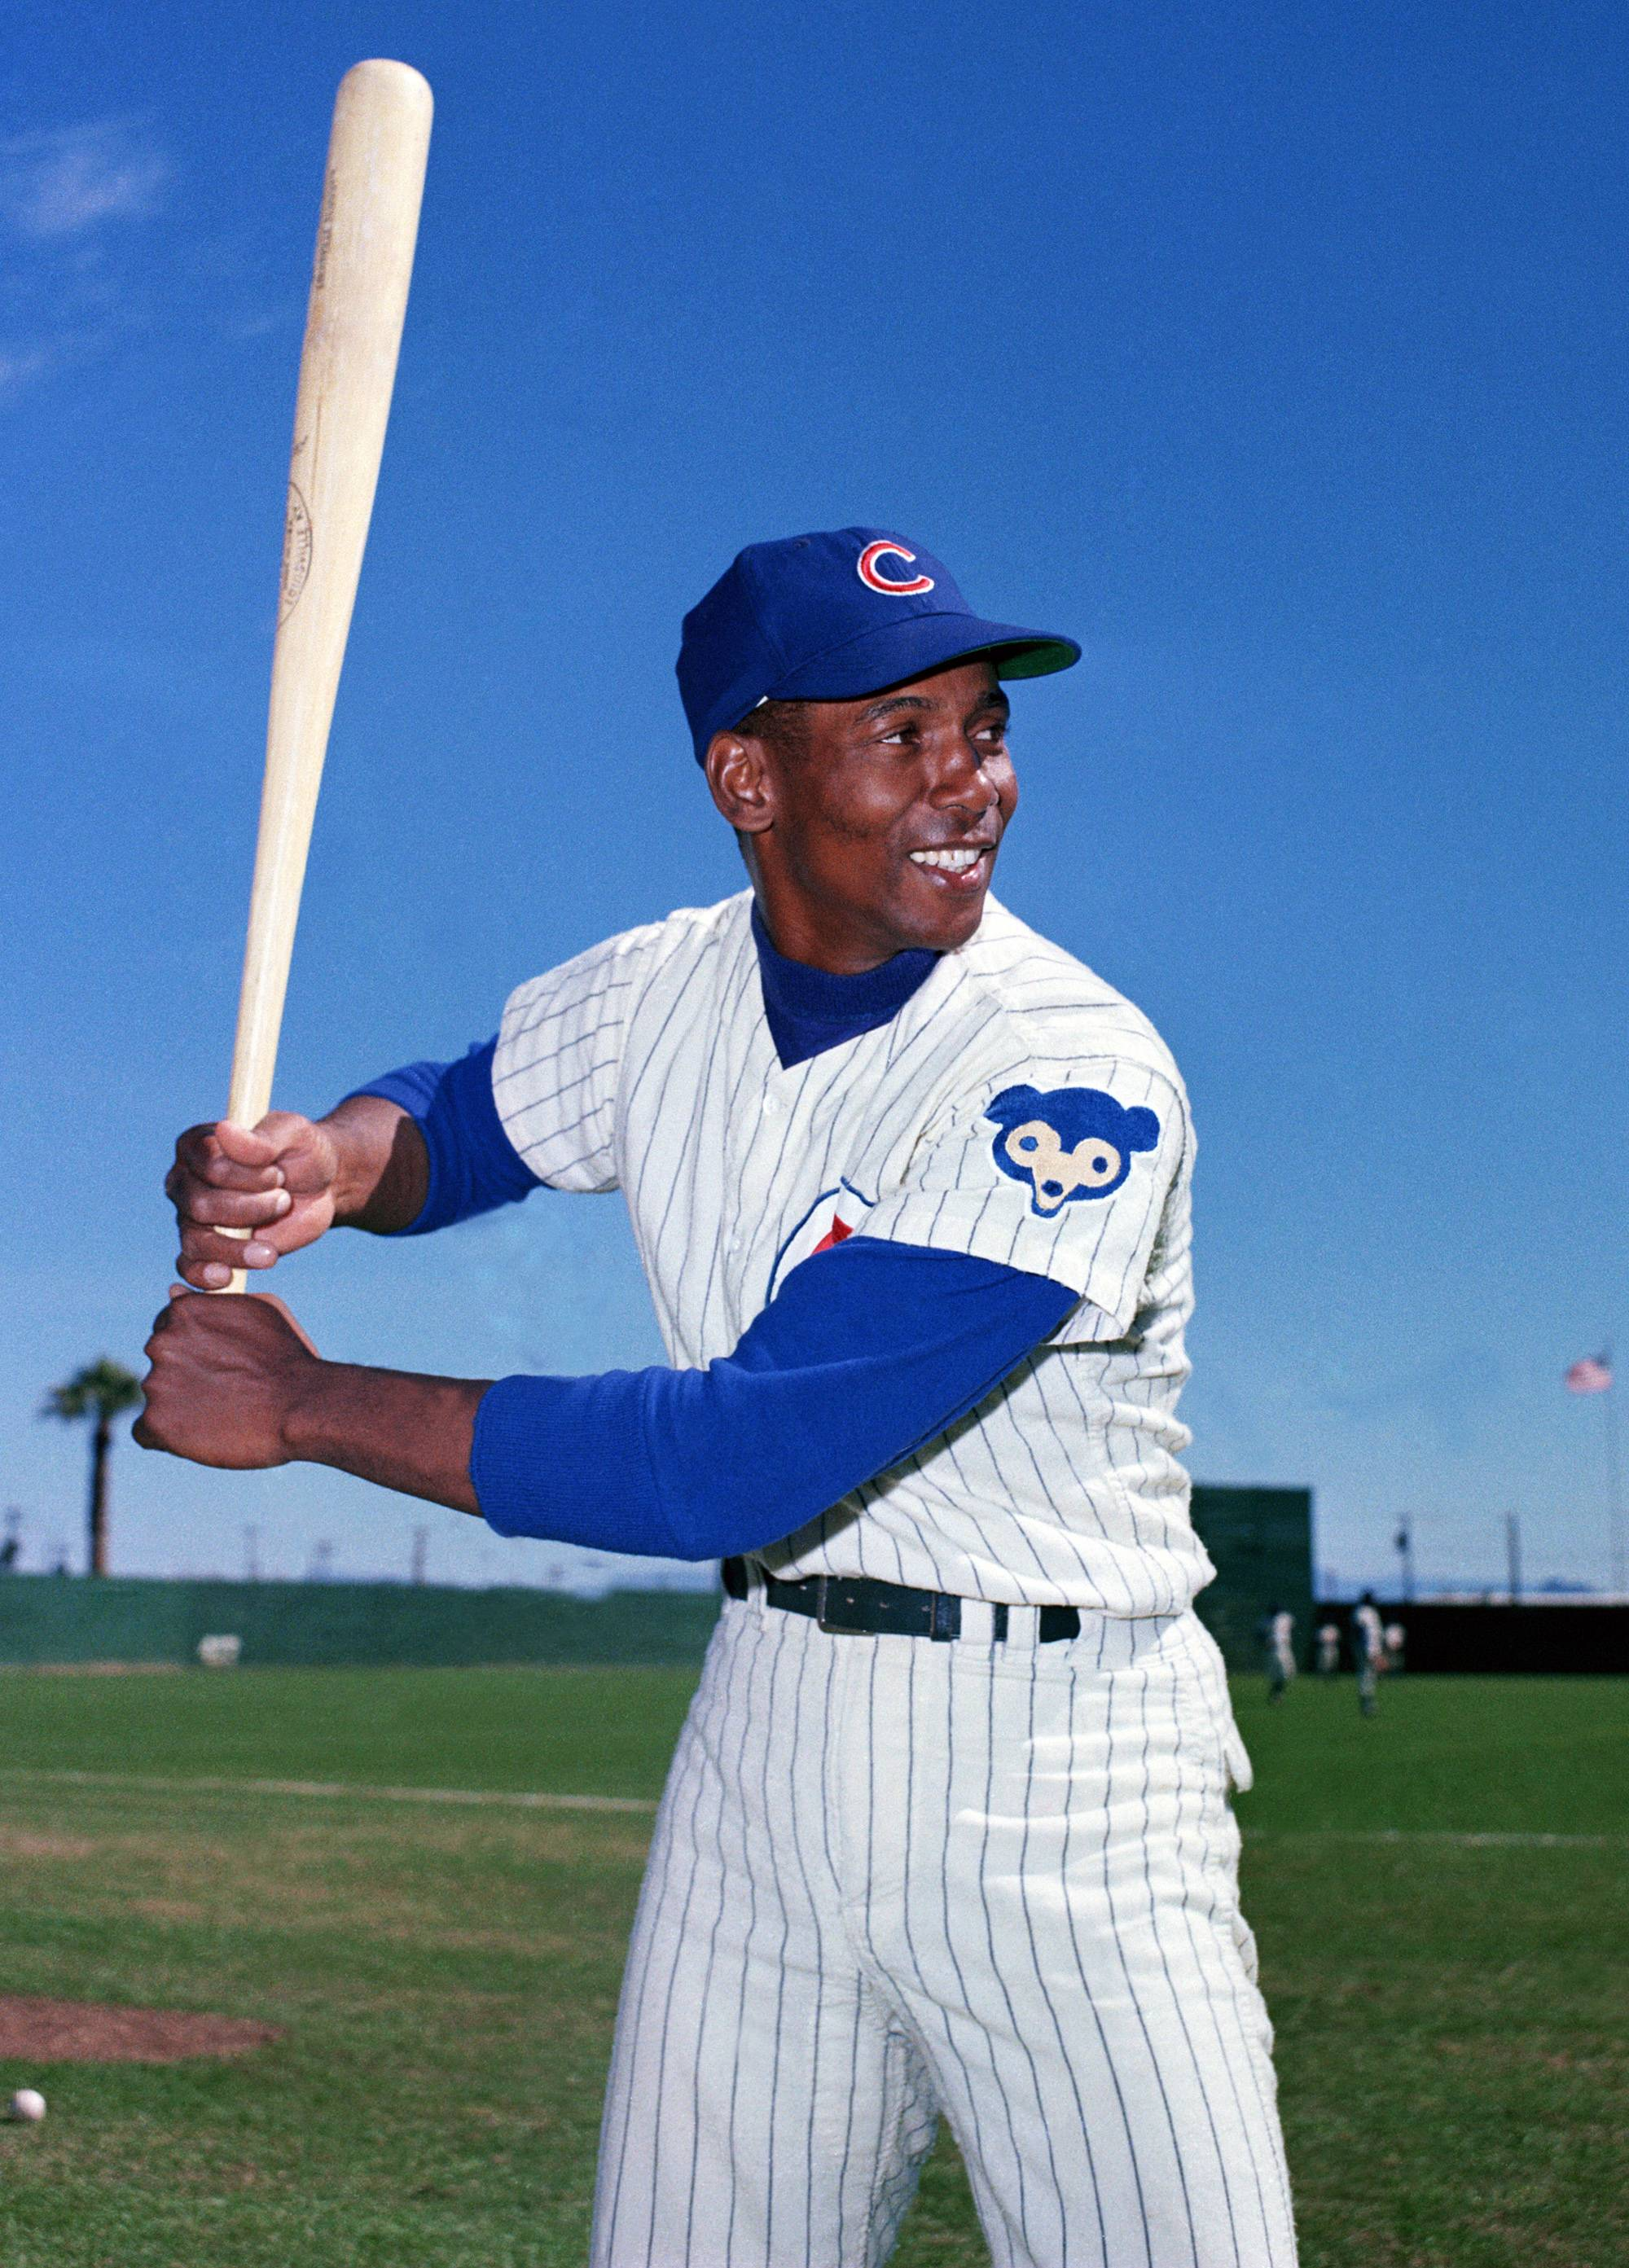 Ernie Banks, seen here in 1968. more than measured up as a Hall of Famer even by today's metrics.